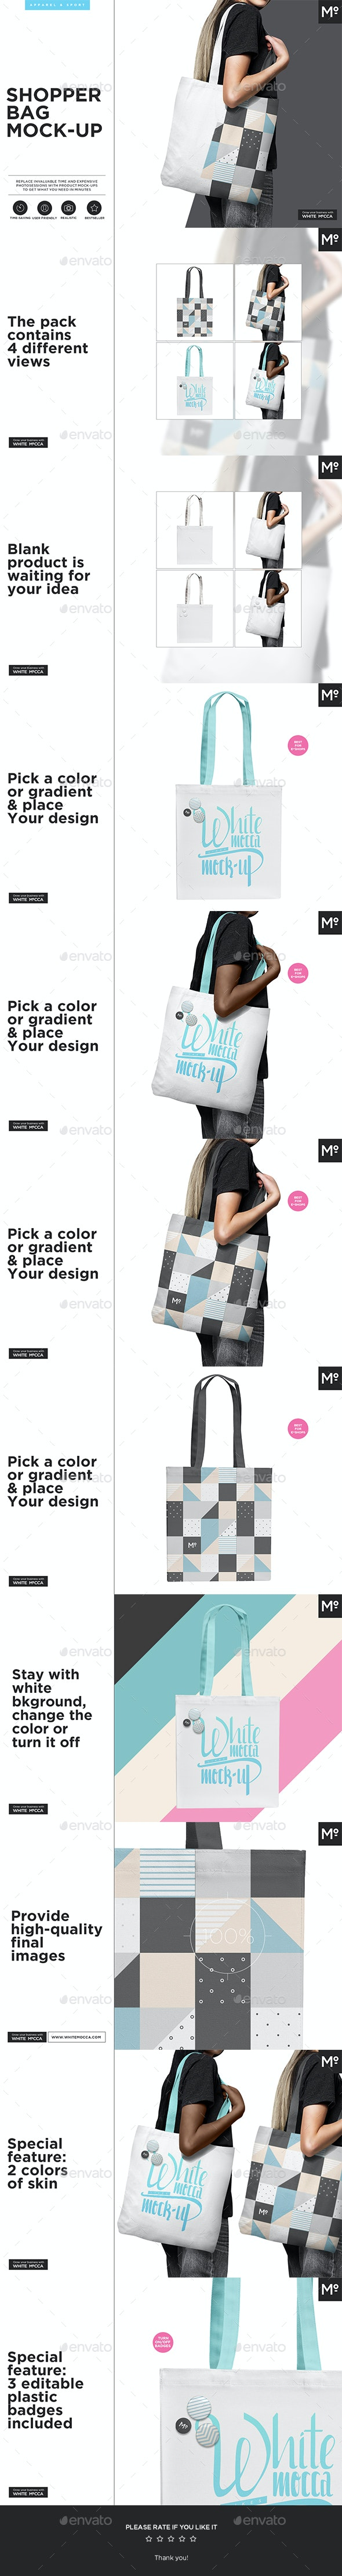 Canvas Shopper / Tote Bag Mock-up - Miscellaneous Product Mock-Ups